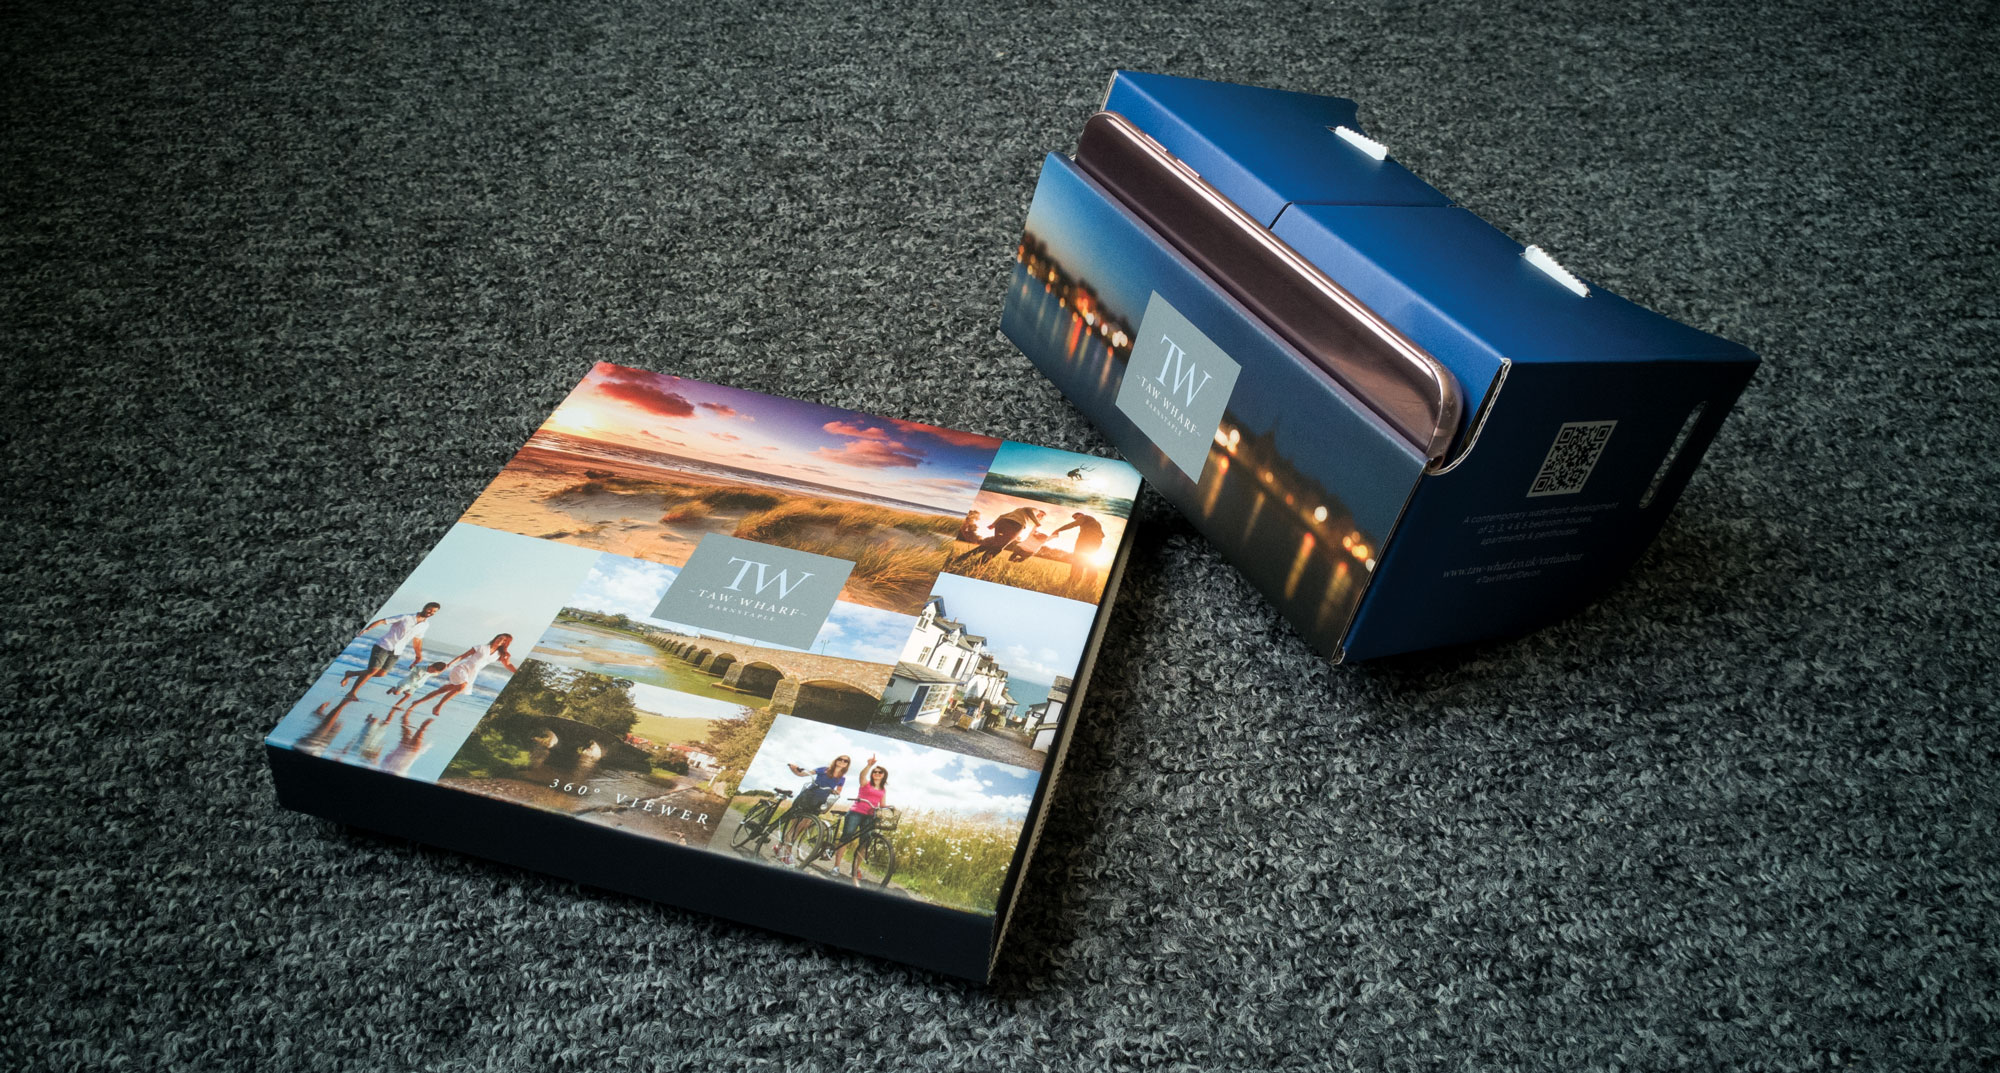 Anchorwood Bank Taw Wharf Virtual Tour Headset and Packaging